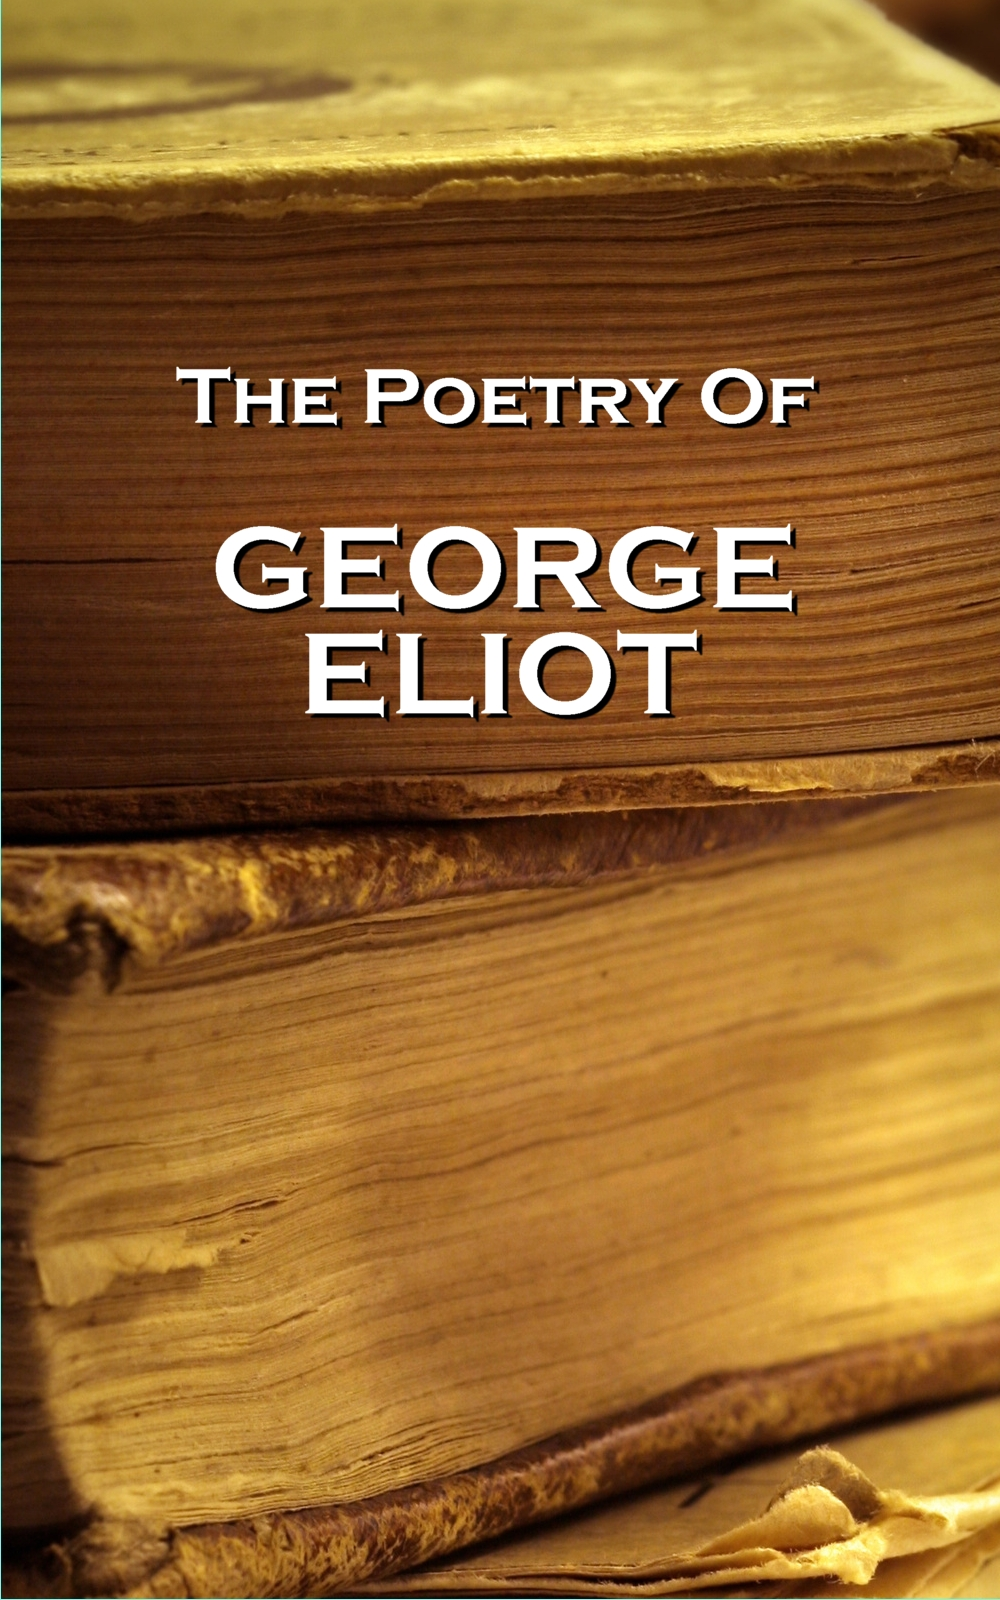 George Eliot, The Poetry